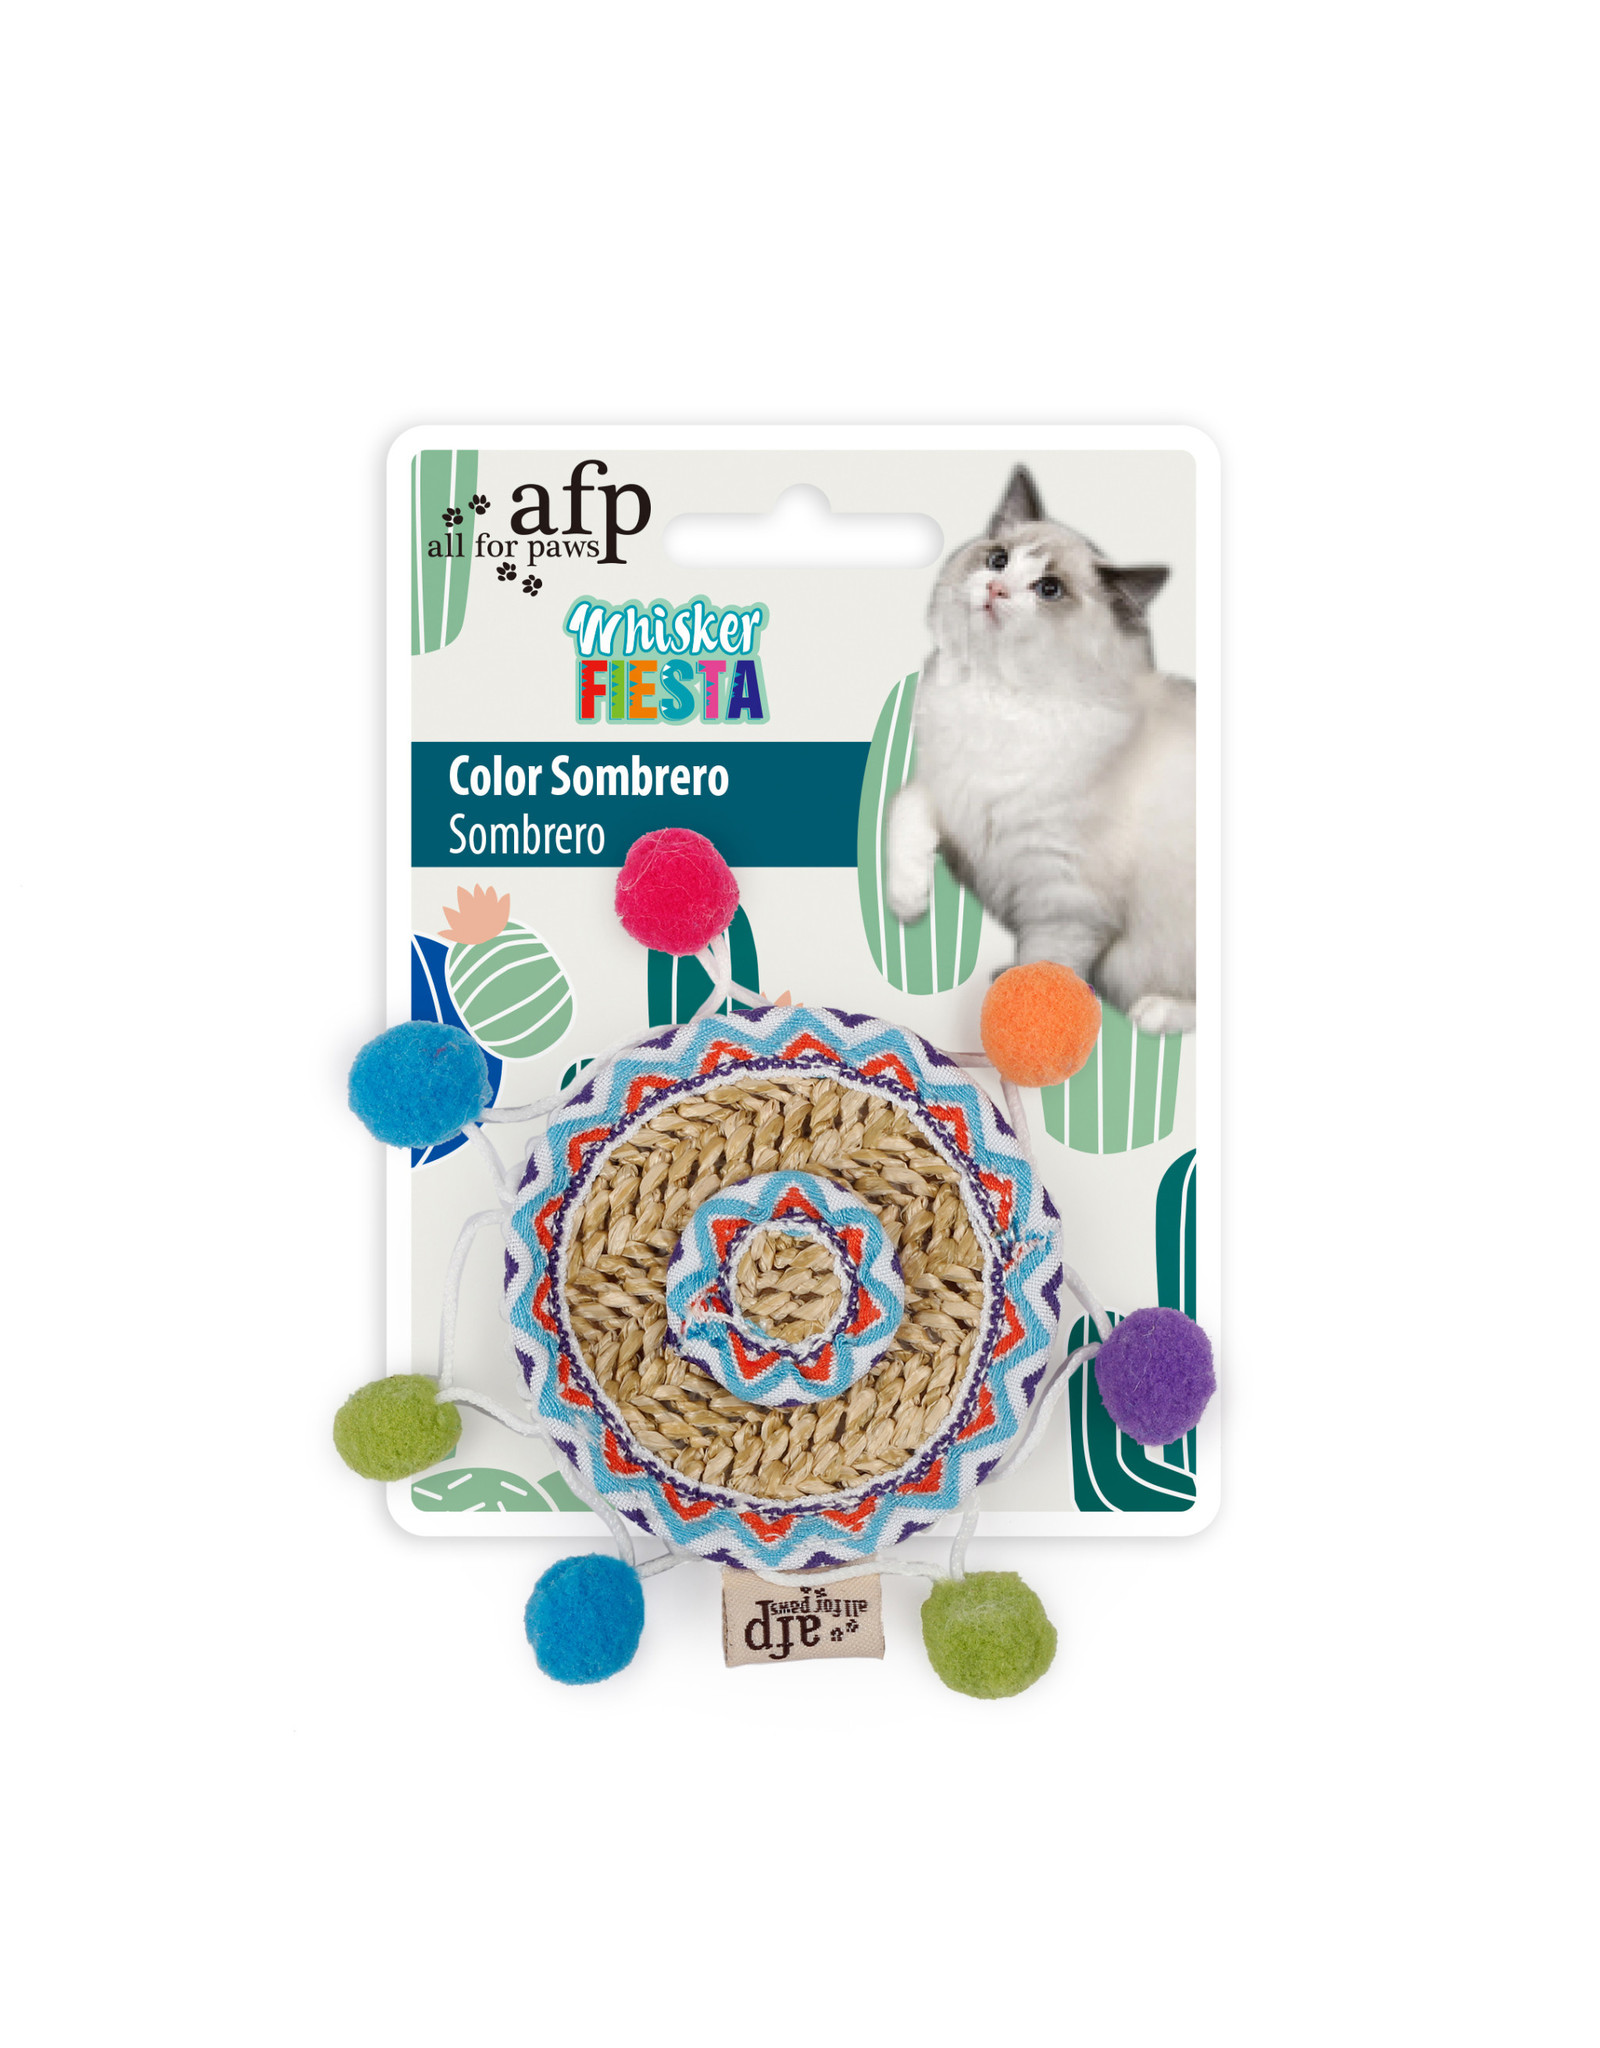 All for Paws Whisker Fiesta Colour Sombrero